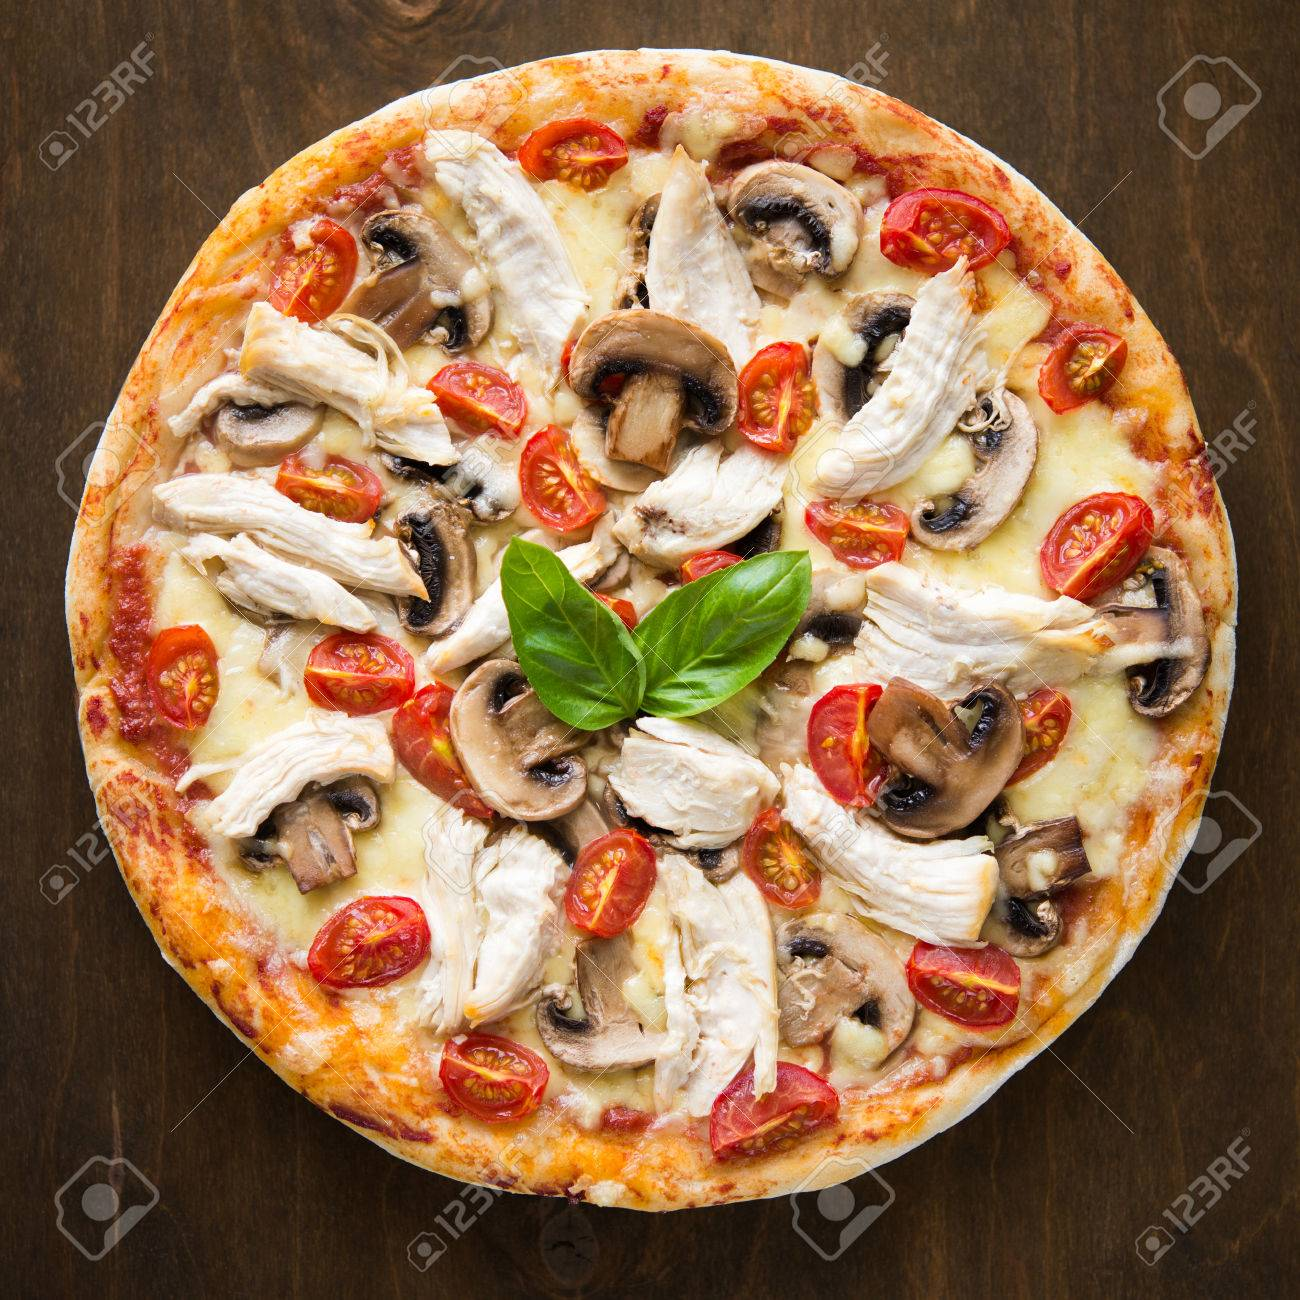 Pizza with chicken, tomato and mushrooms on dark background top view - 32132765